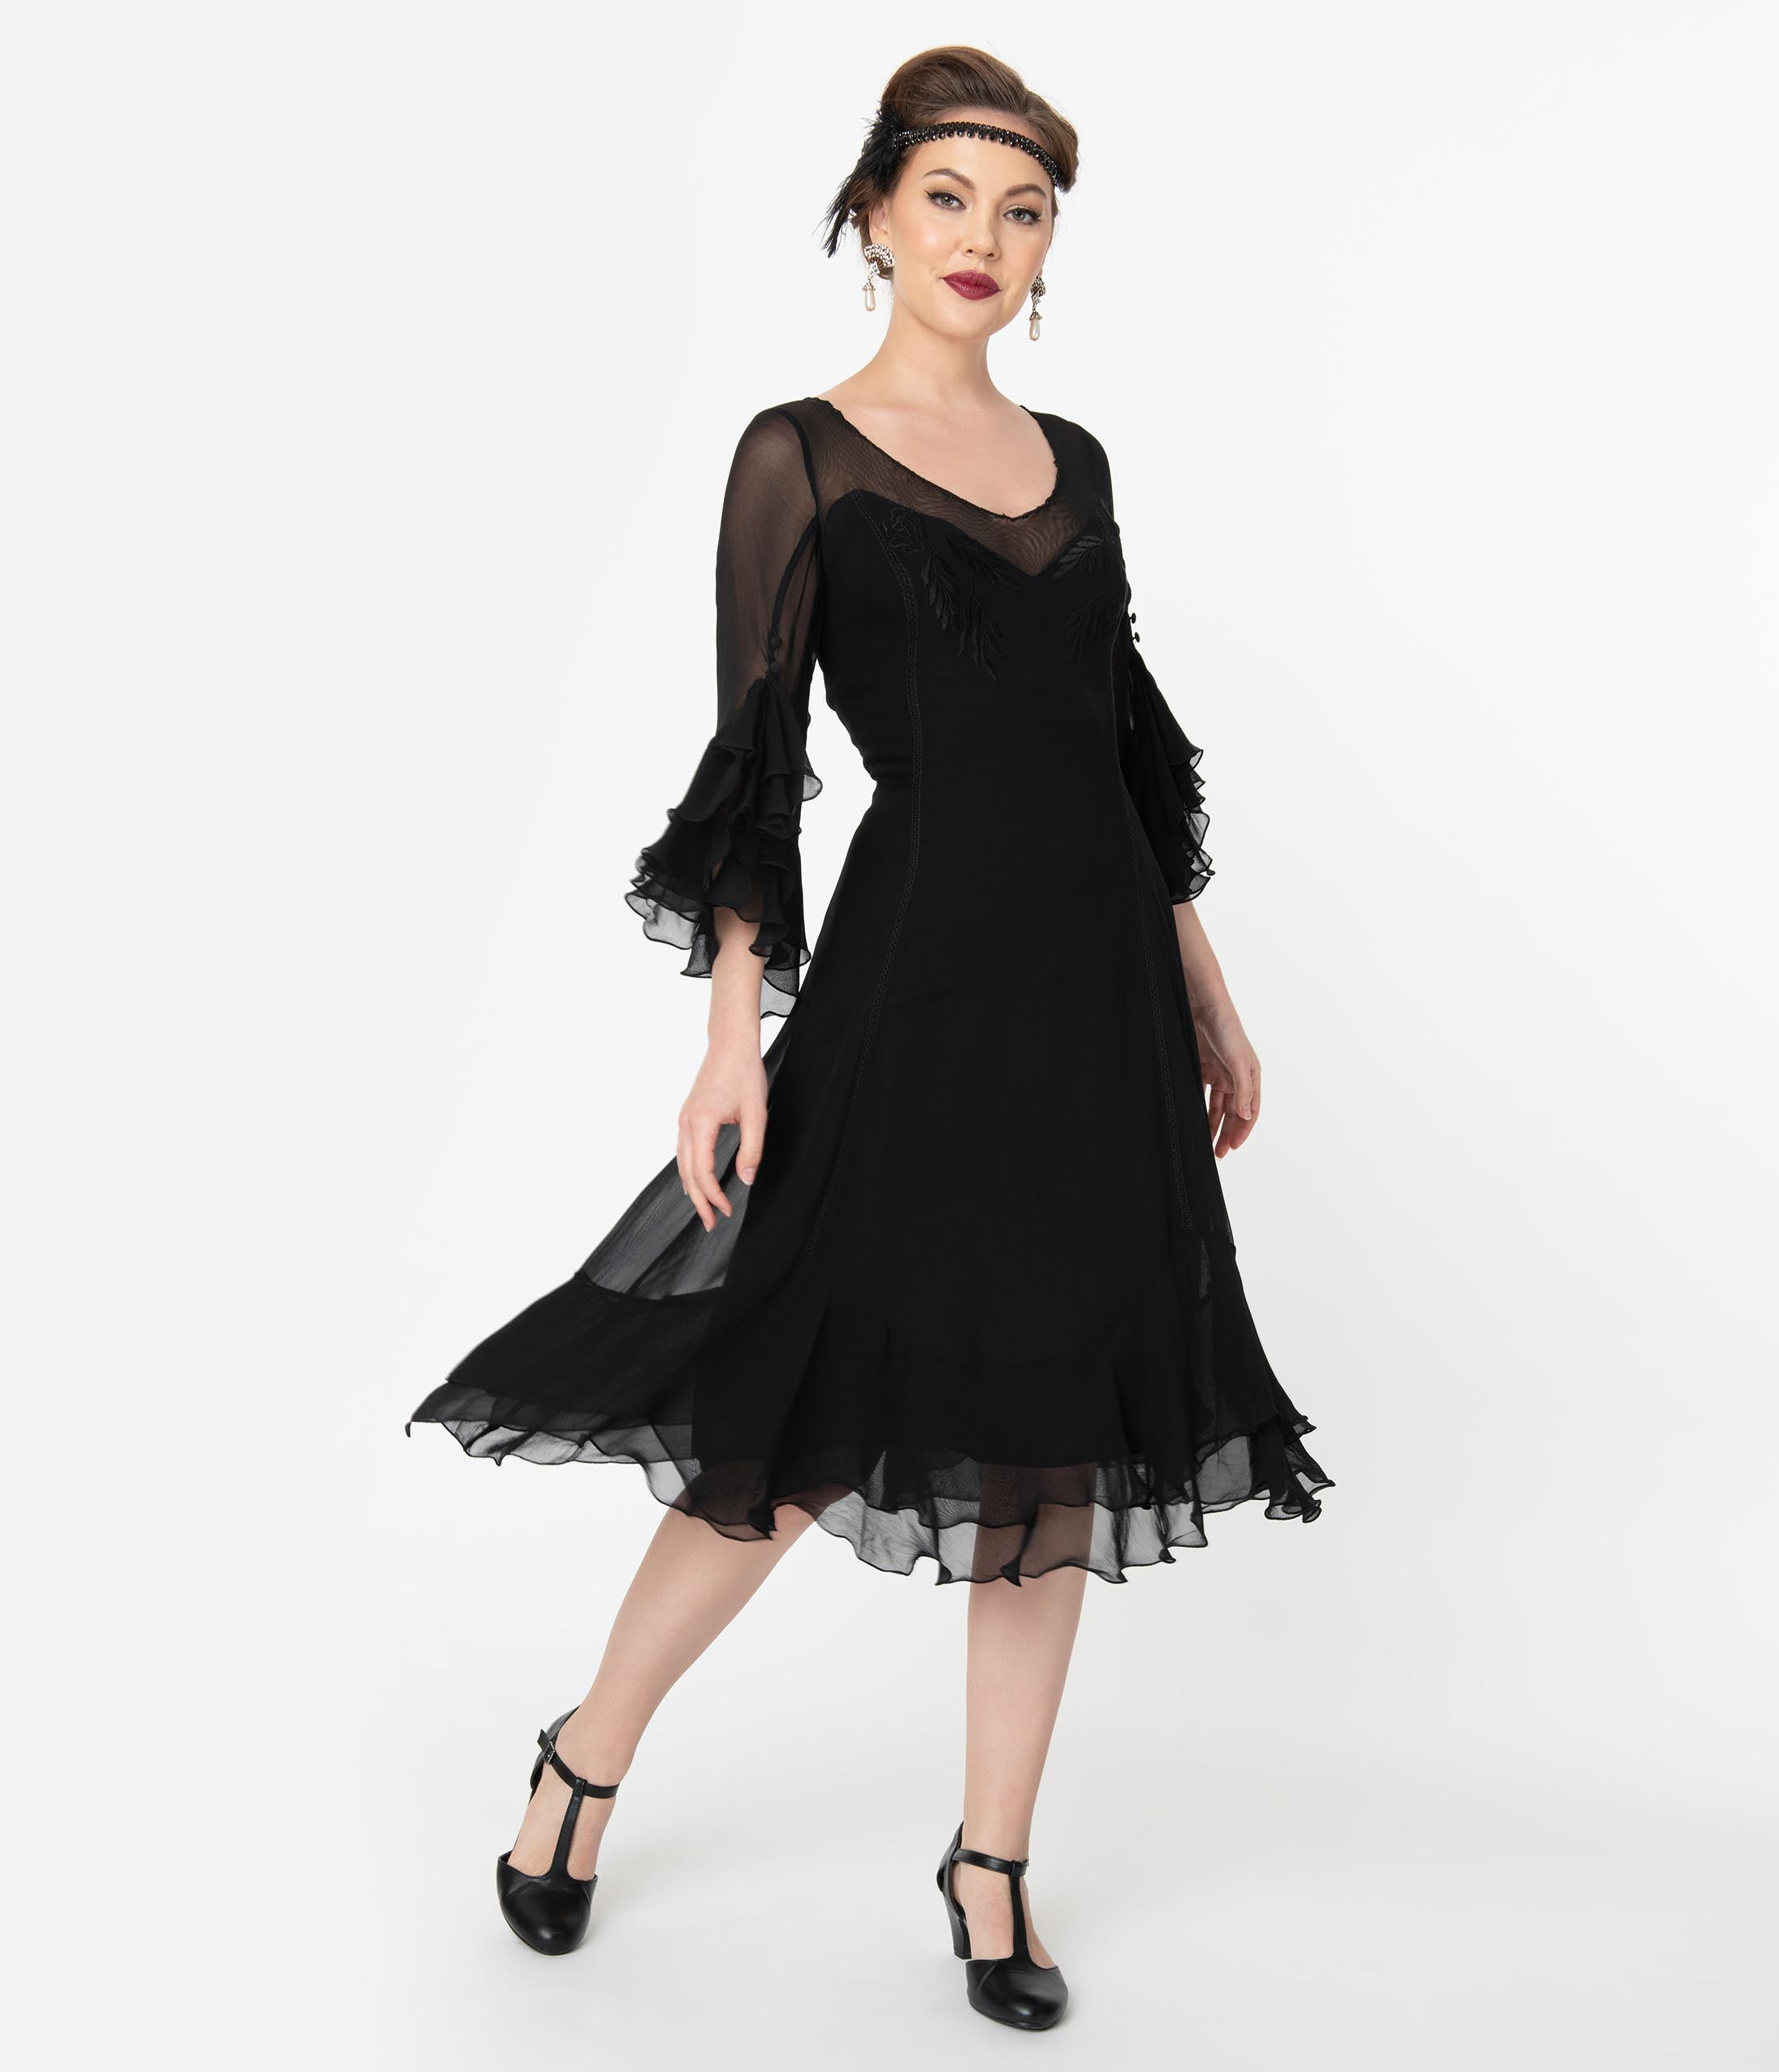 Black Flapper Dresses, 1920s Black Dresses 1920S Style Black Mesh Ruffle Leonardo Midi Dress $218.00 AT vintagedancer.com